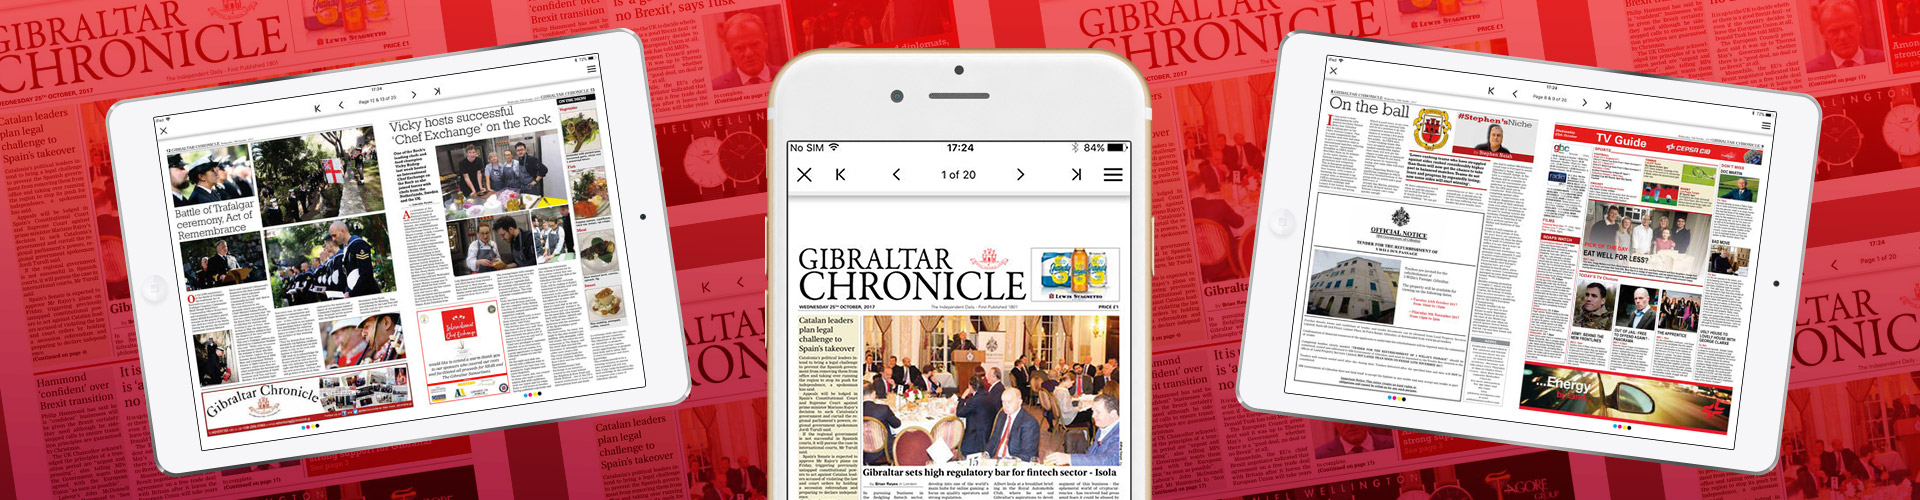 Header image of Gibraltar Chronicle